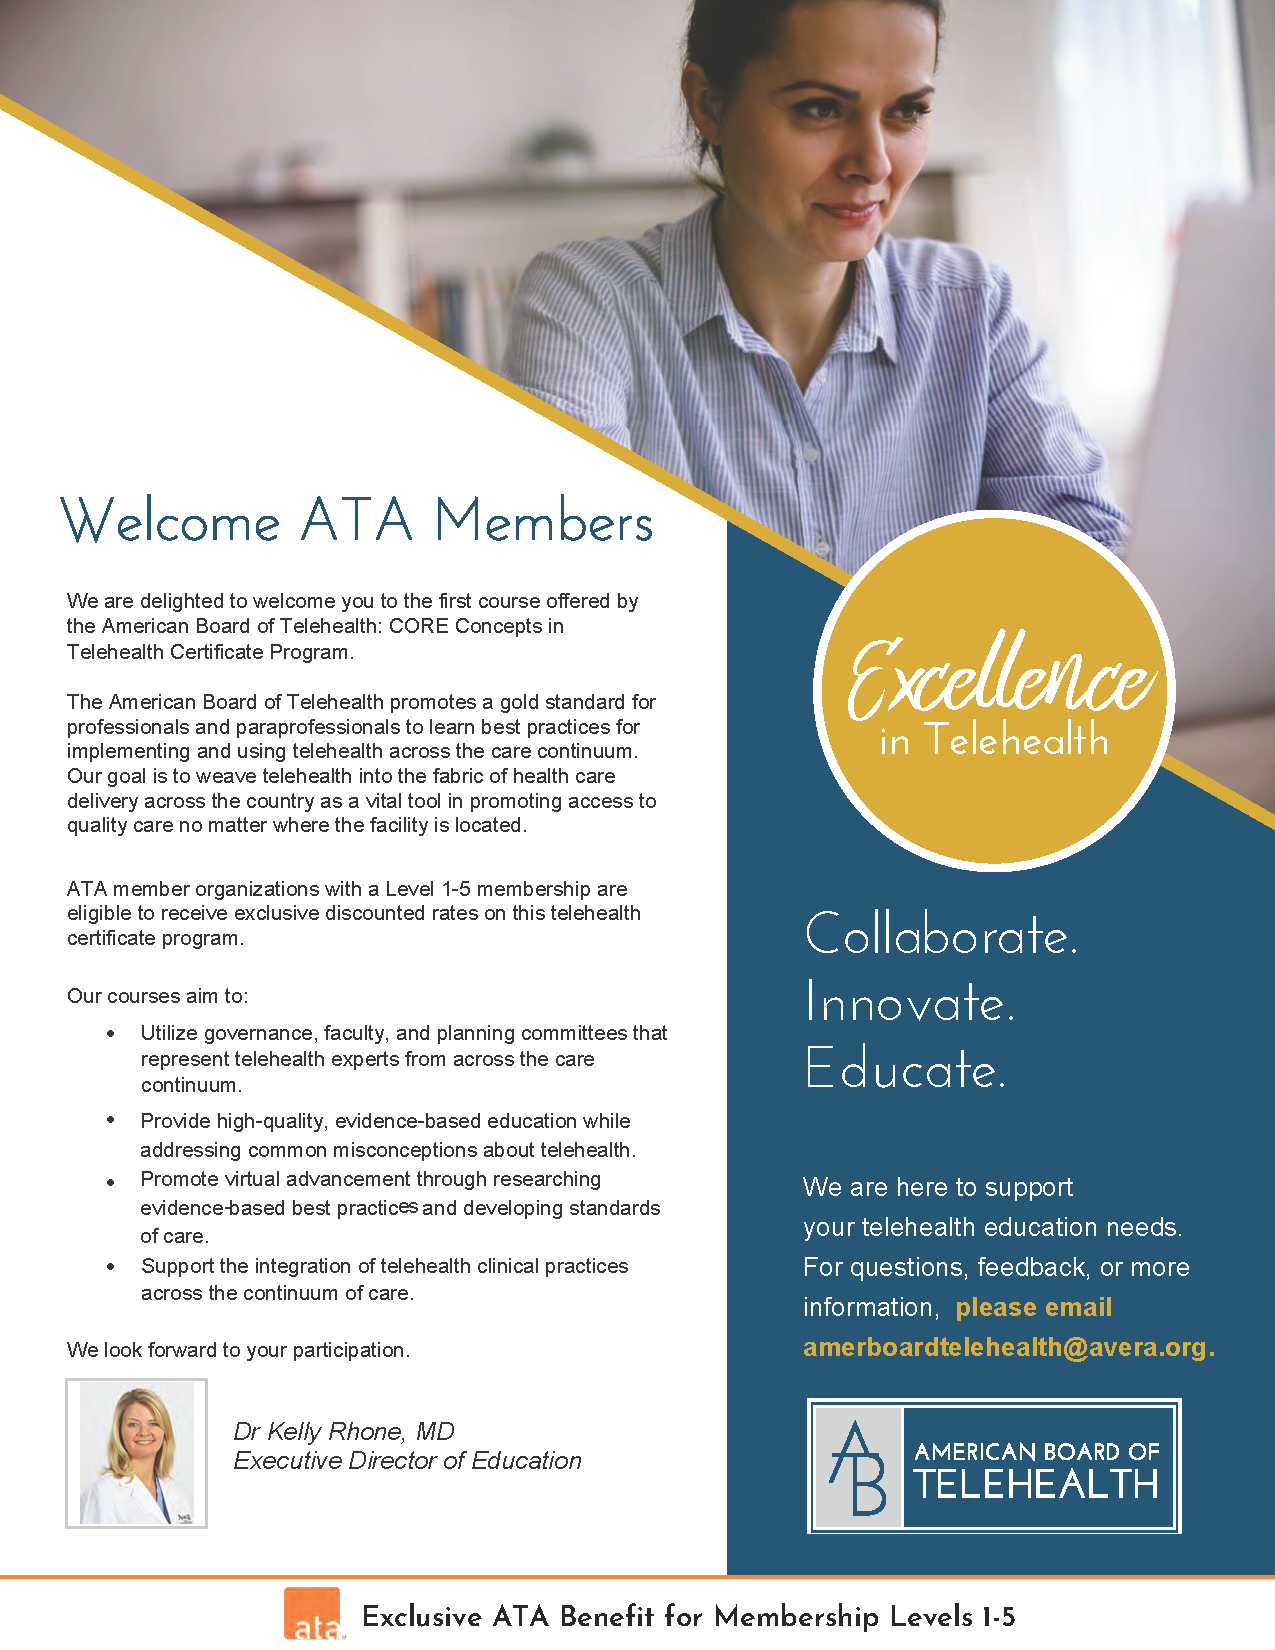 Welcome ATA Members_ABT CORE Concepts in Telehealth Certificate Program_Page_1